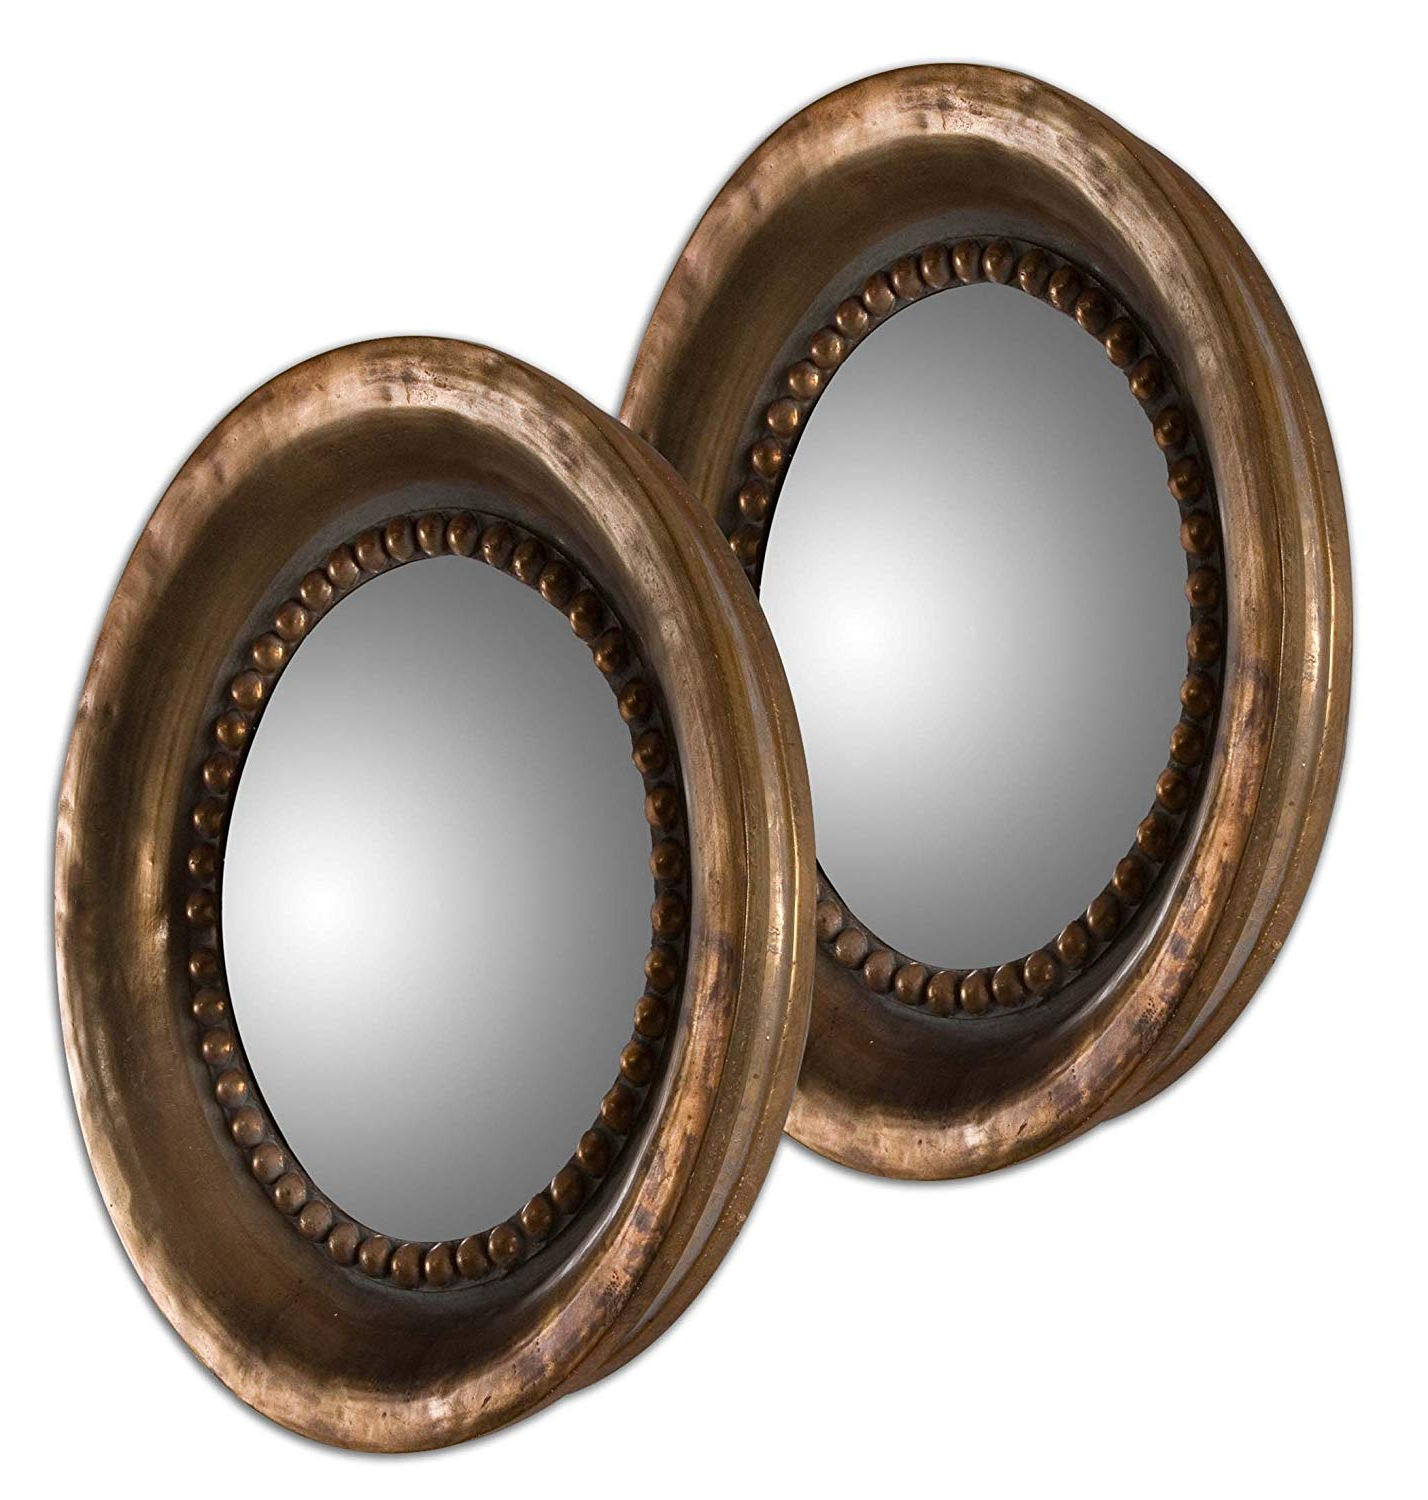 Most Recent Round Convex Wall Mirrors For Amazon: Zinc Decor Oxidized Copper Round Convex Wall (View 10 of 20)